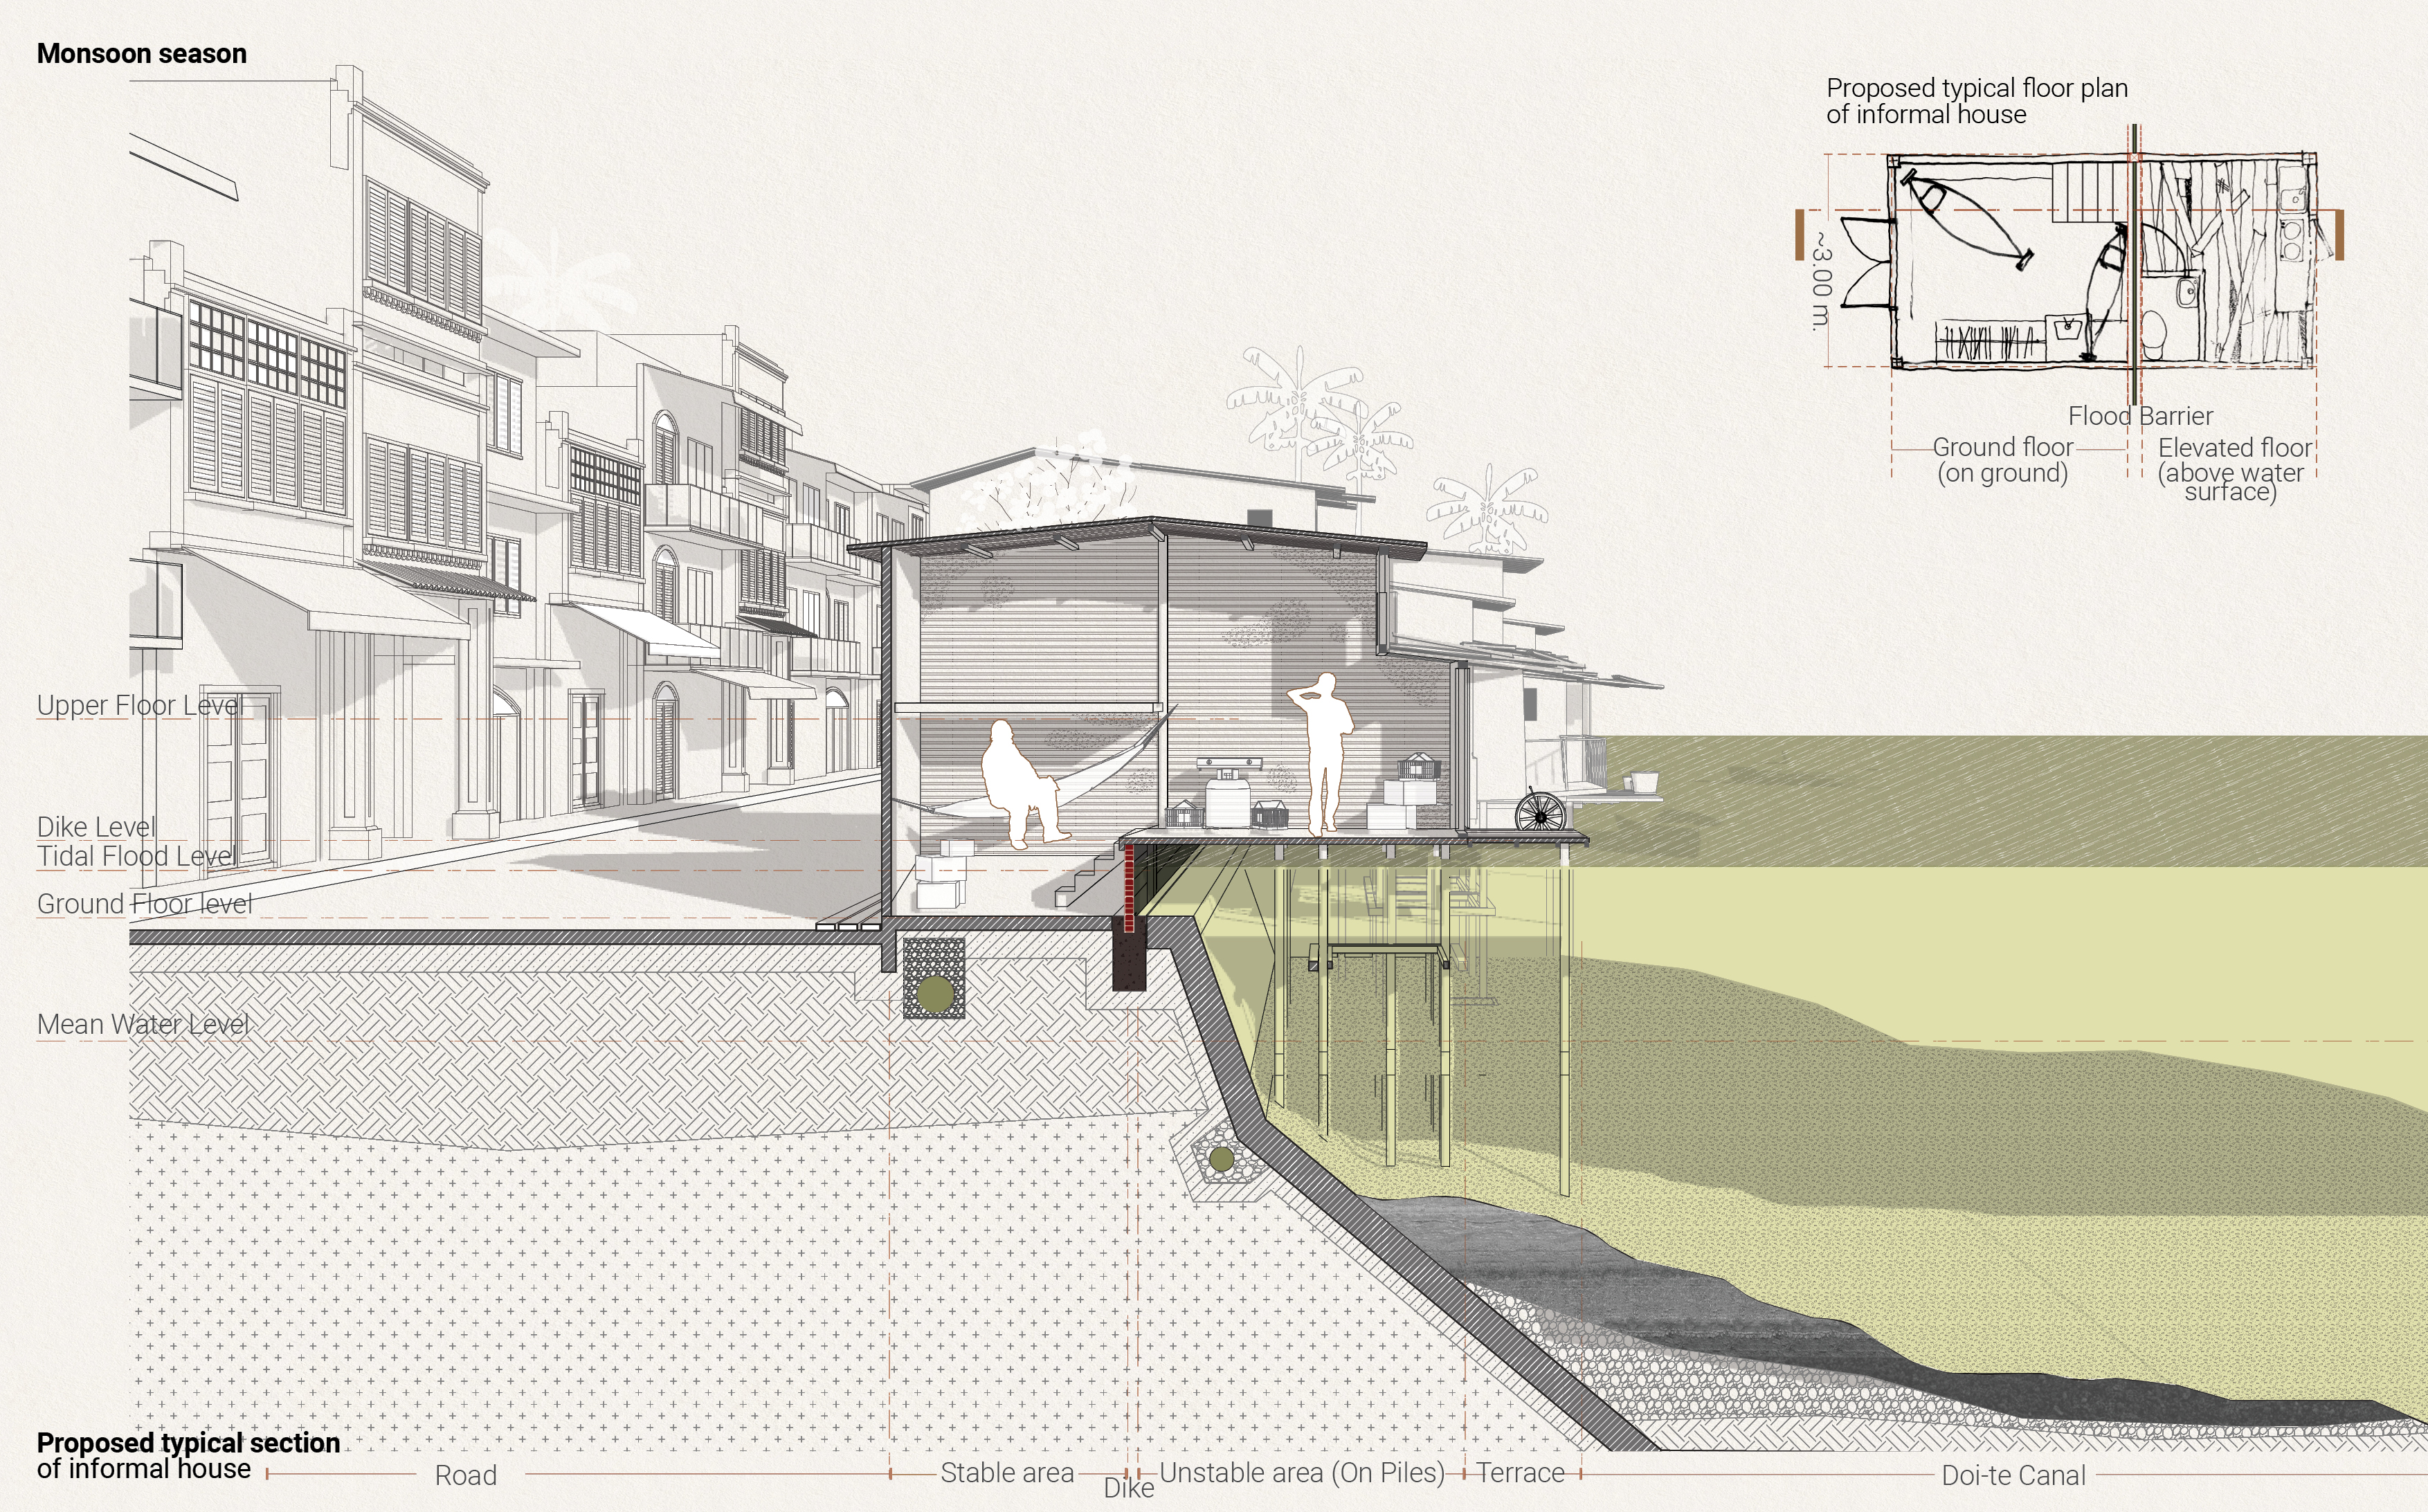 2020_Rapa_Surajaras_Breathe - Redefining a zone of informal settlement_Category A